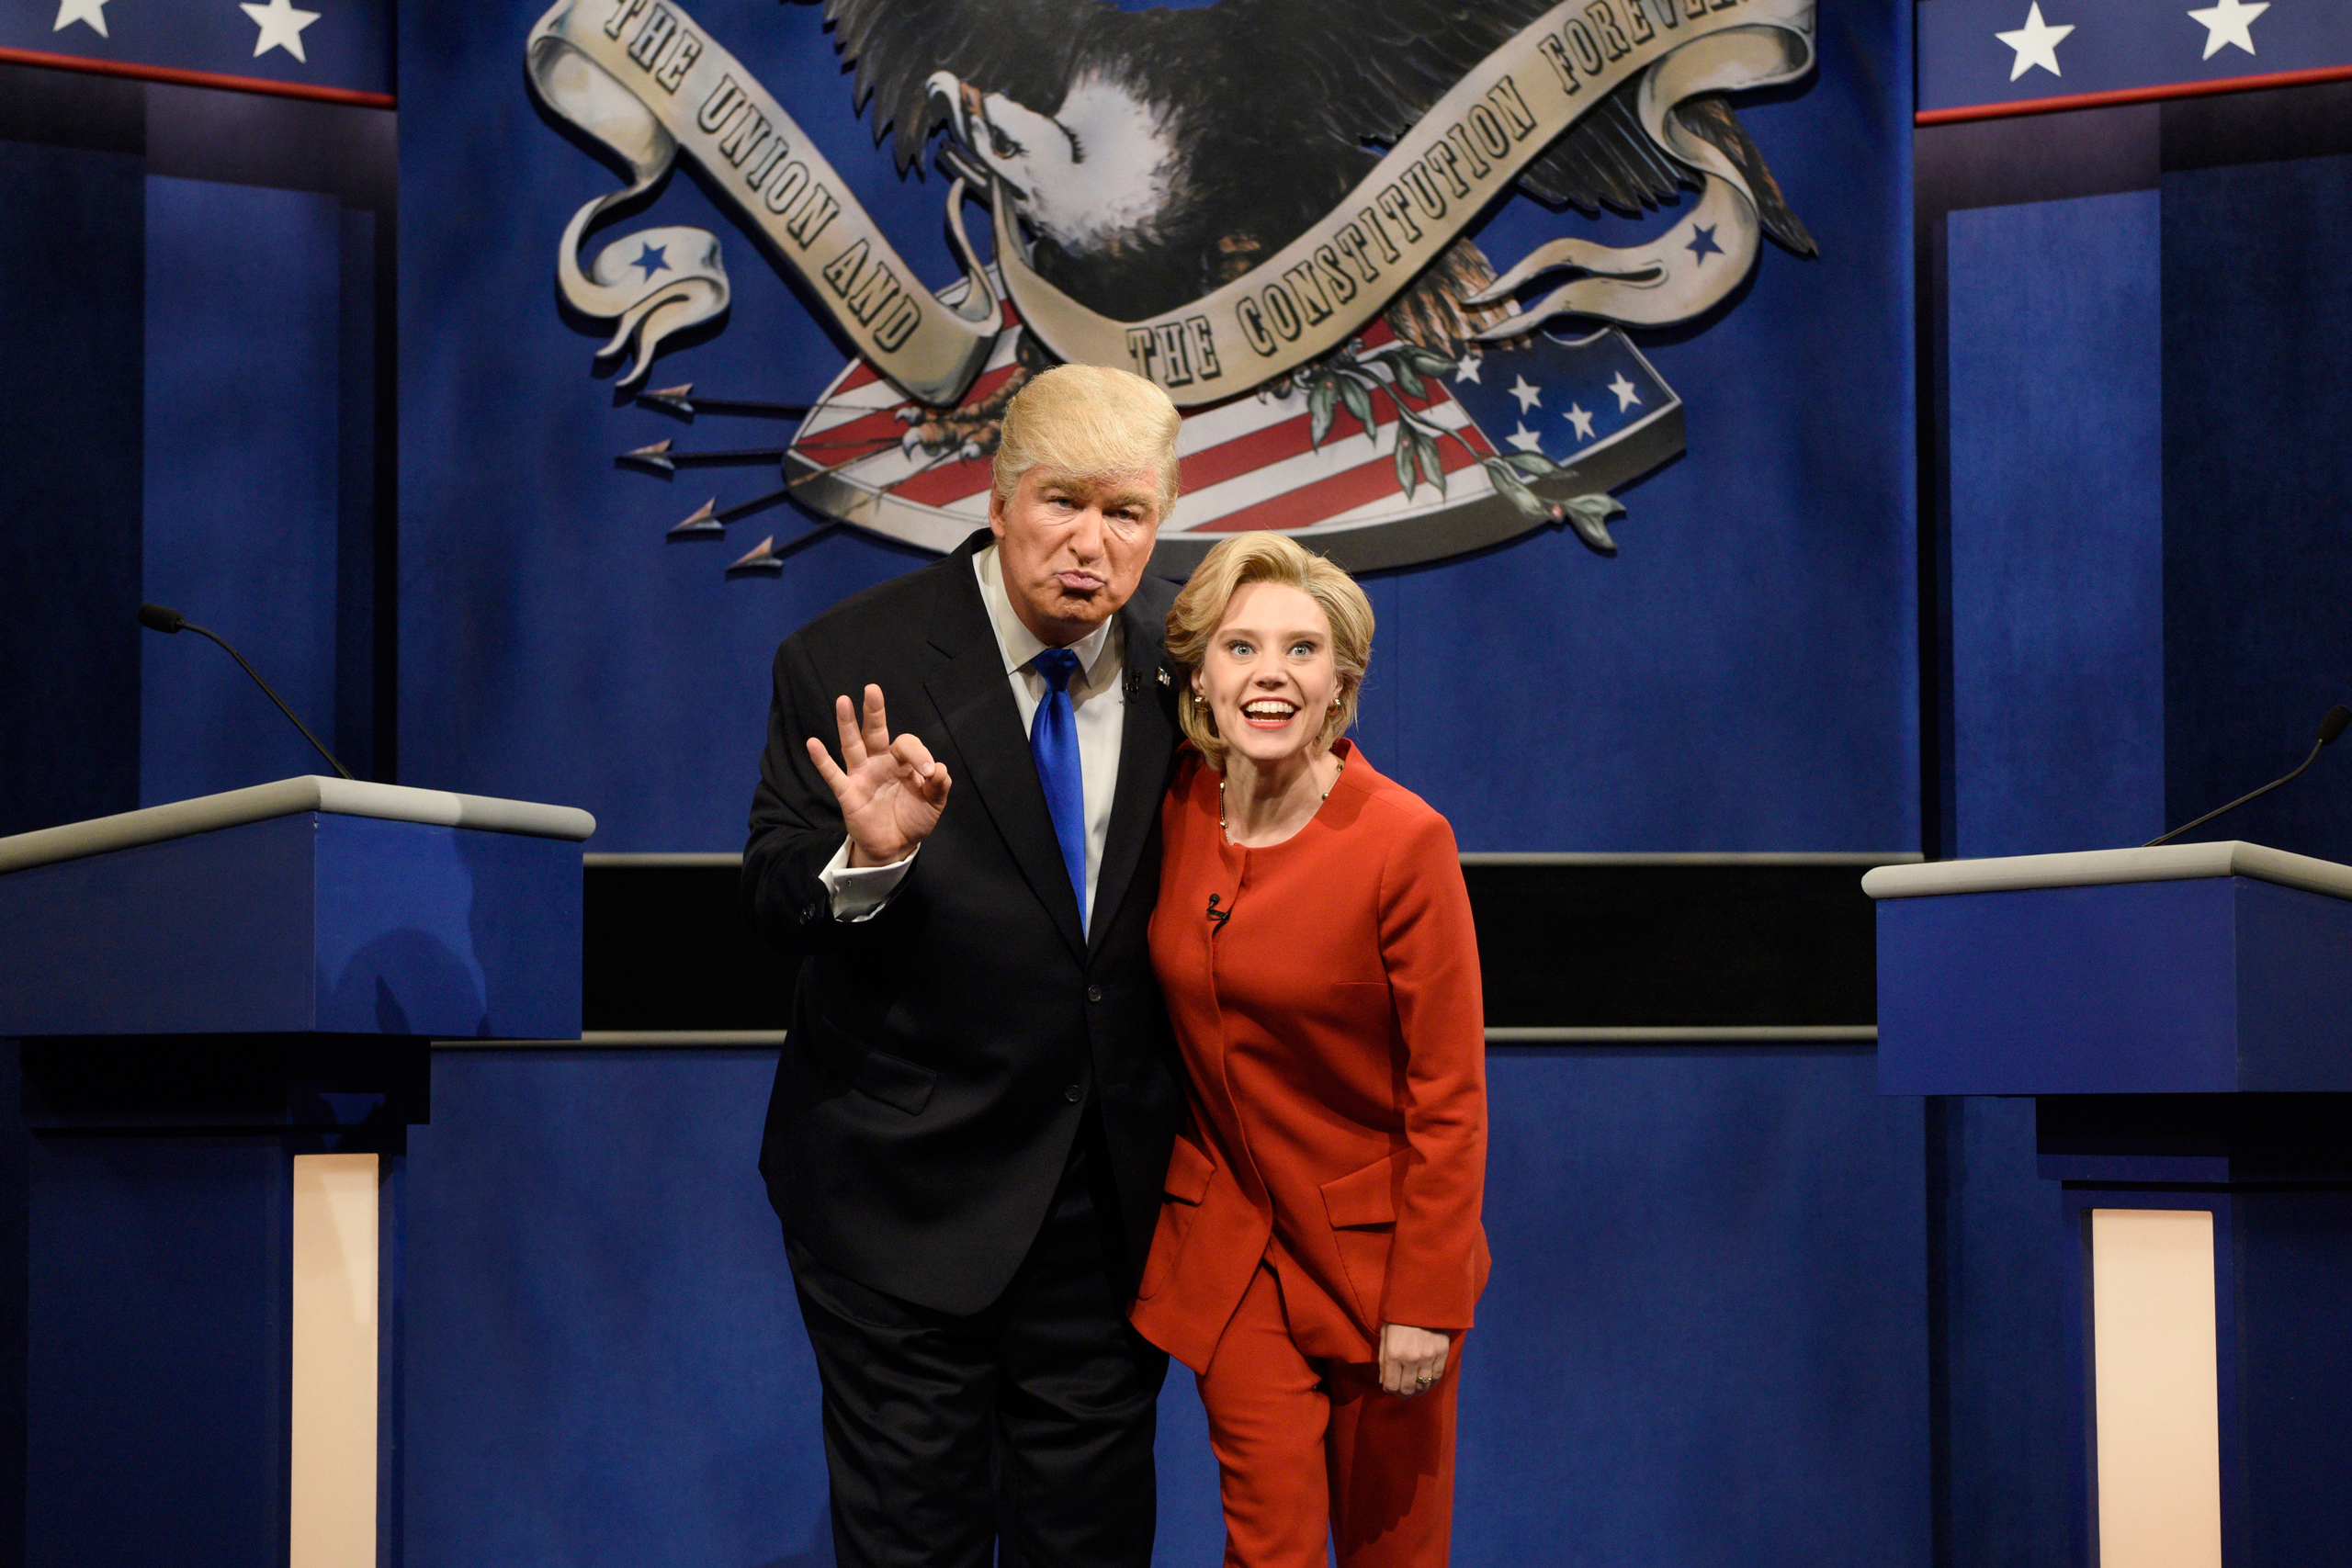 Alec Baldwin as Donald Trump and Kate McKinnon as Hillary Clinton during the  Debate Cold Open  sketch on October 1, 2016.